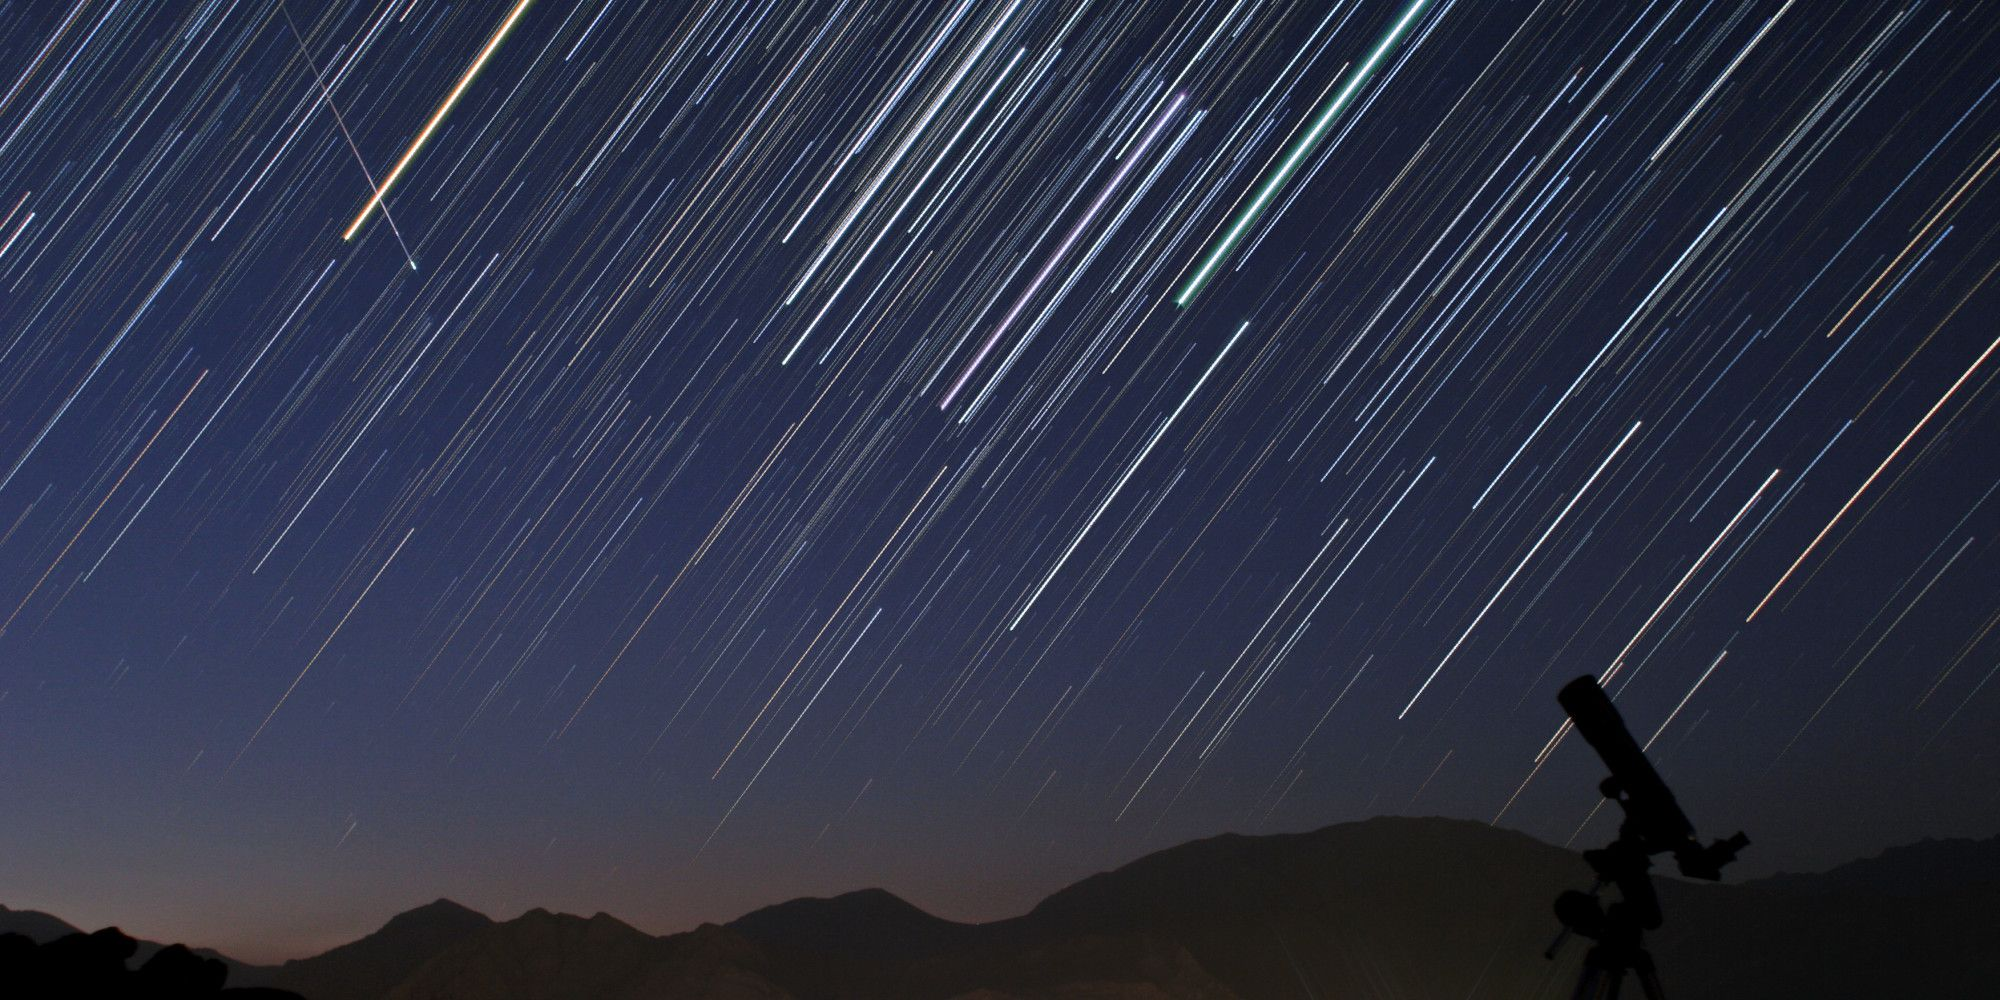 UNSPECIFIED - SEPTEMBER 07:  A bright meteor during Perseid meteor shower (Aug. 12) is captured in a star trail image of constellation Orion.  (Photo by Babek Tafreshi/SSPL/Getty Images)